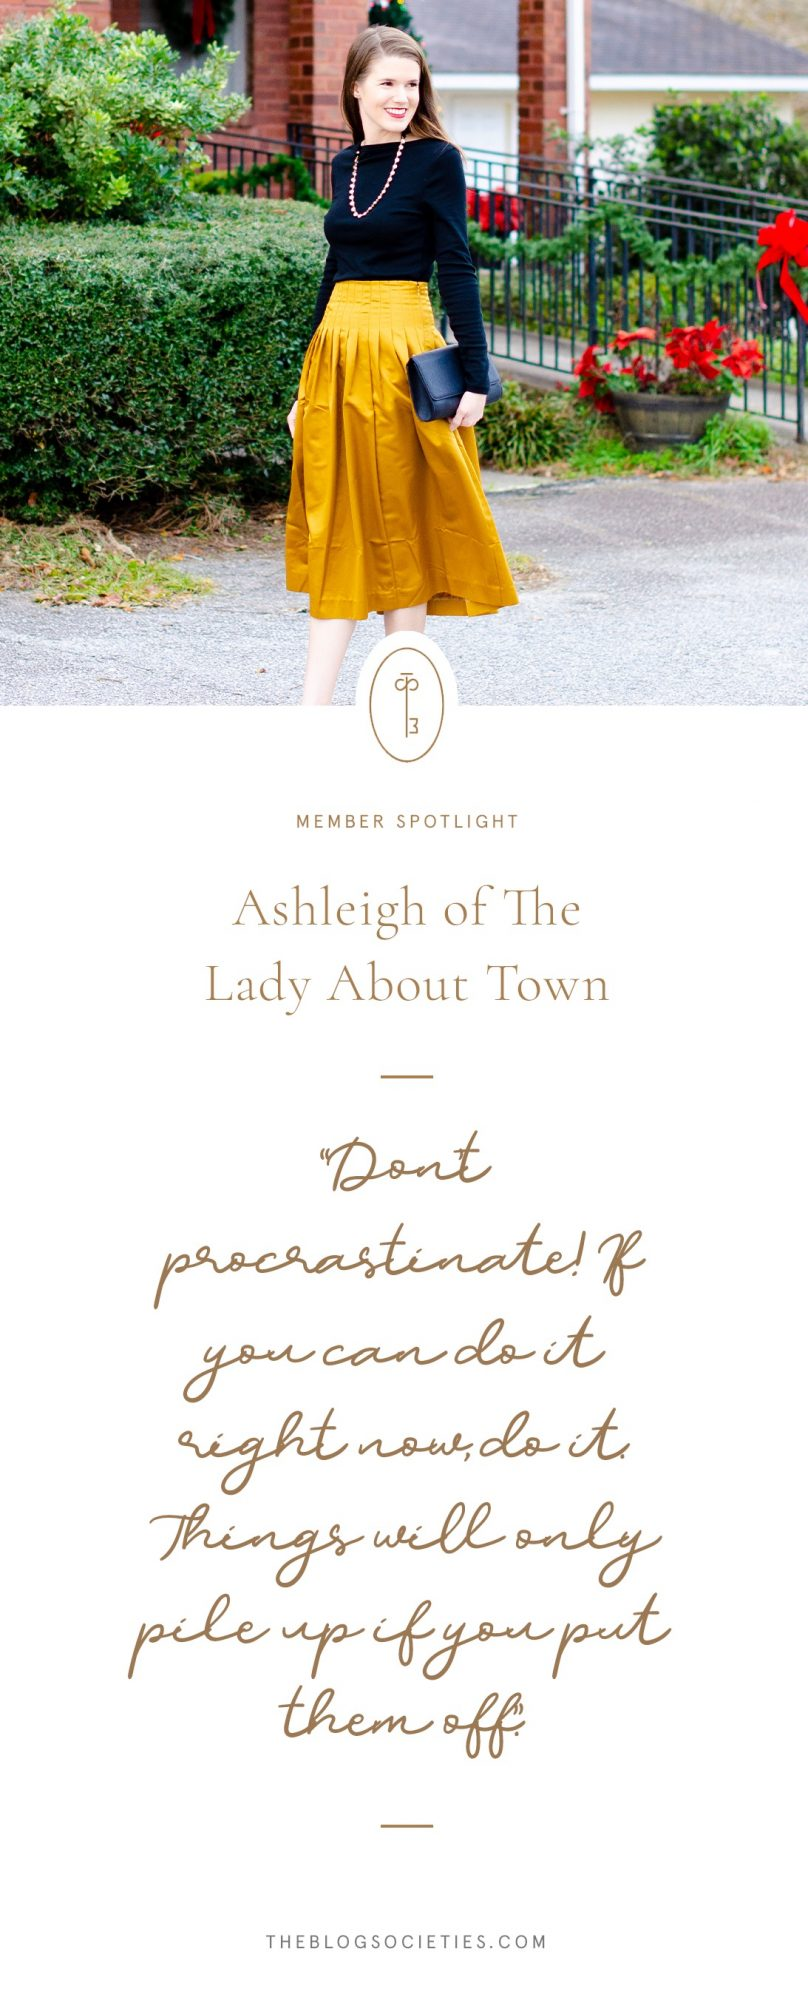 Ashleigh of The Lady About Town